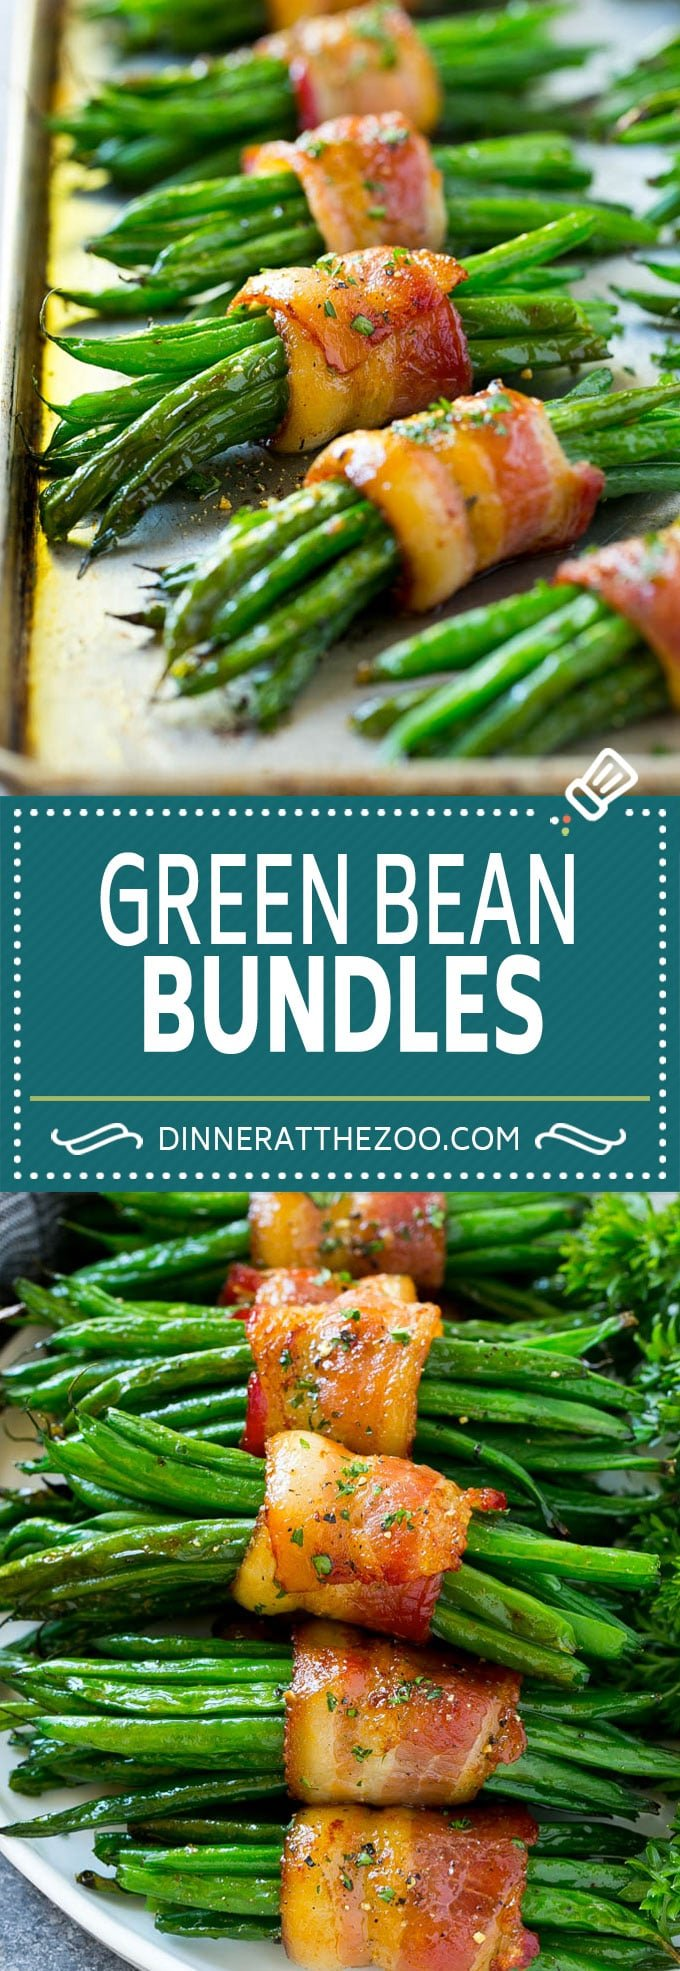 Green Bean Bundles Recipe | Bacon Wrapped Green Beans | Green Beans with Bacon | Green Beans Recipe #bacon #greenbeans #sidedish #dinner #dinneratthezoo